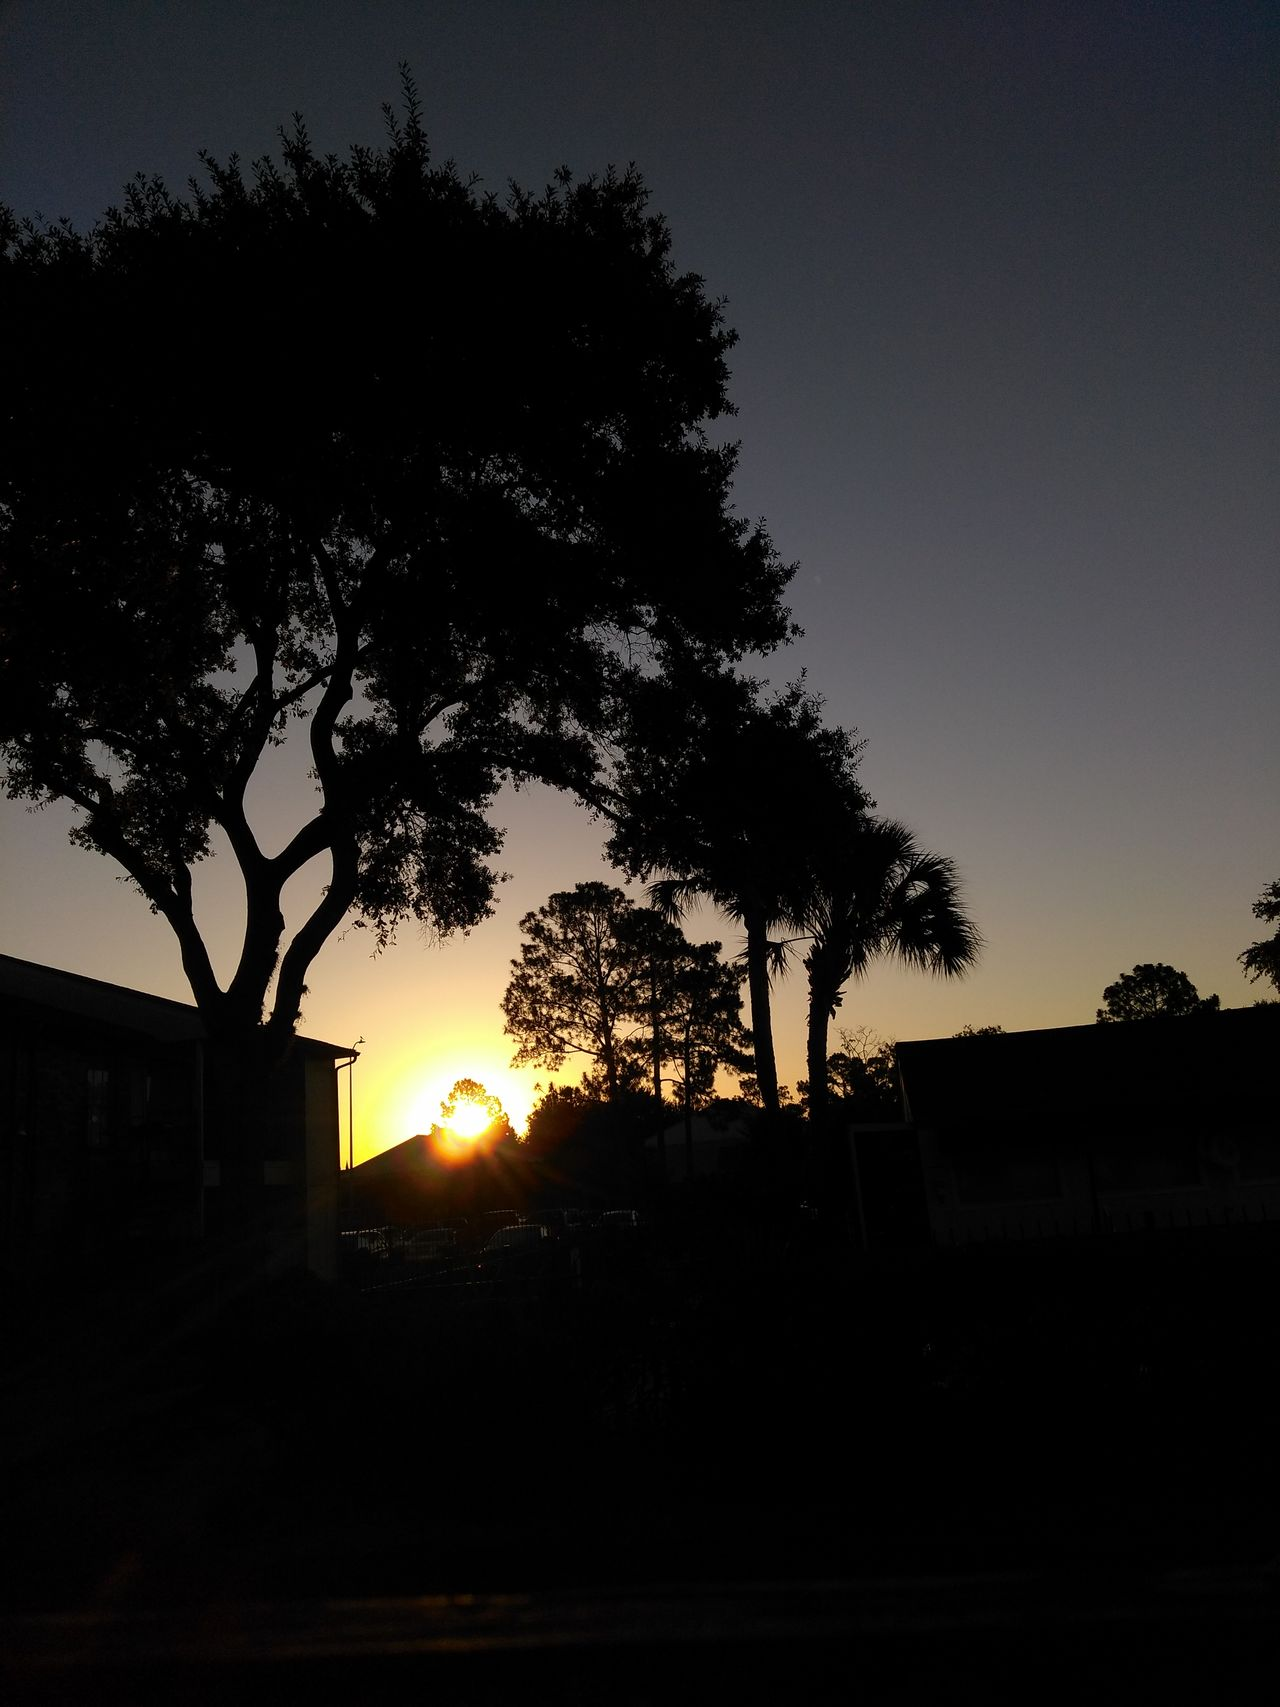 Peek a boo! Silhouette Tree Sunset No People Sky Night Outdoors Nature Beauty In Nature City Pixelated The Great Outdoors - 2017 EyeEm Awards The Street Photographer - 2017 EyeEm Awards Nature Beautiful Tree Silhouette Texas Photooftheday Myview EyeEm Best Shots Funinthesun  Cloud - Sky Eyeemcollection City